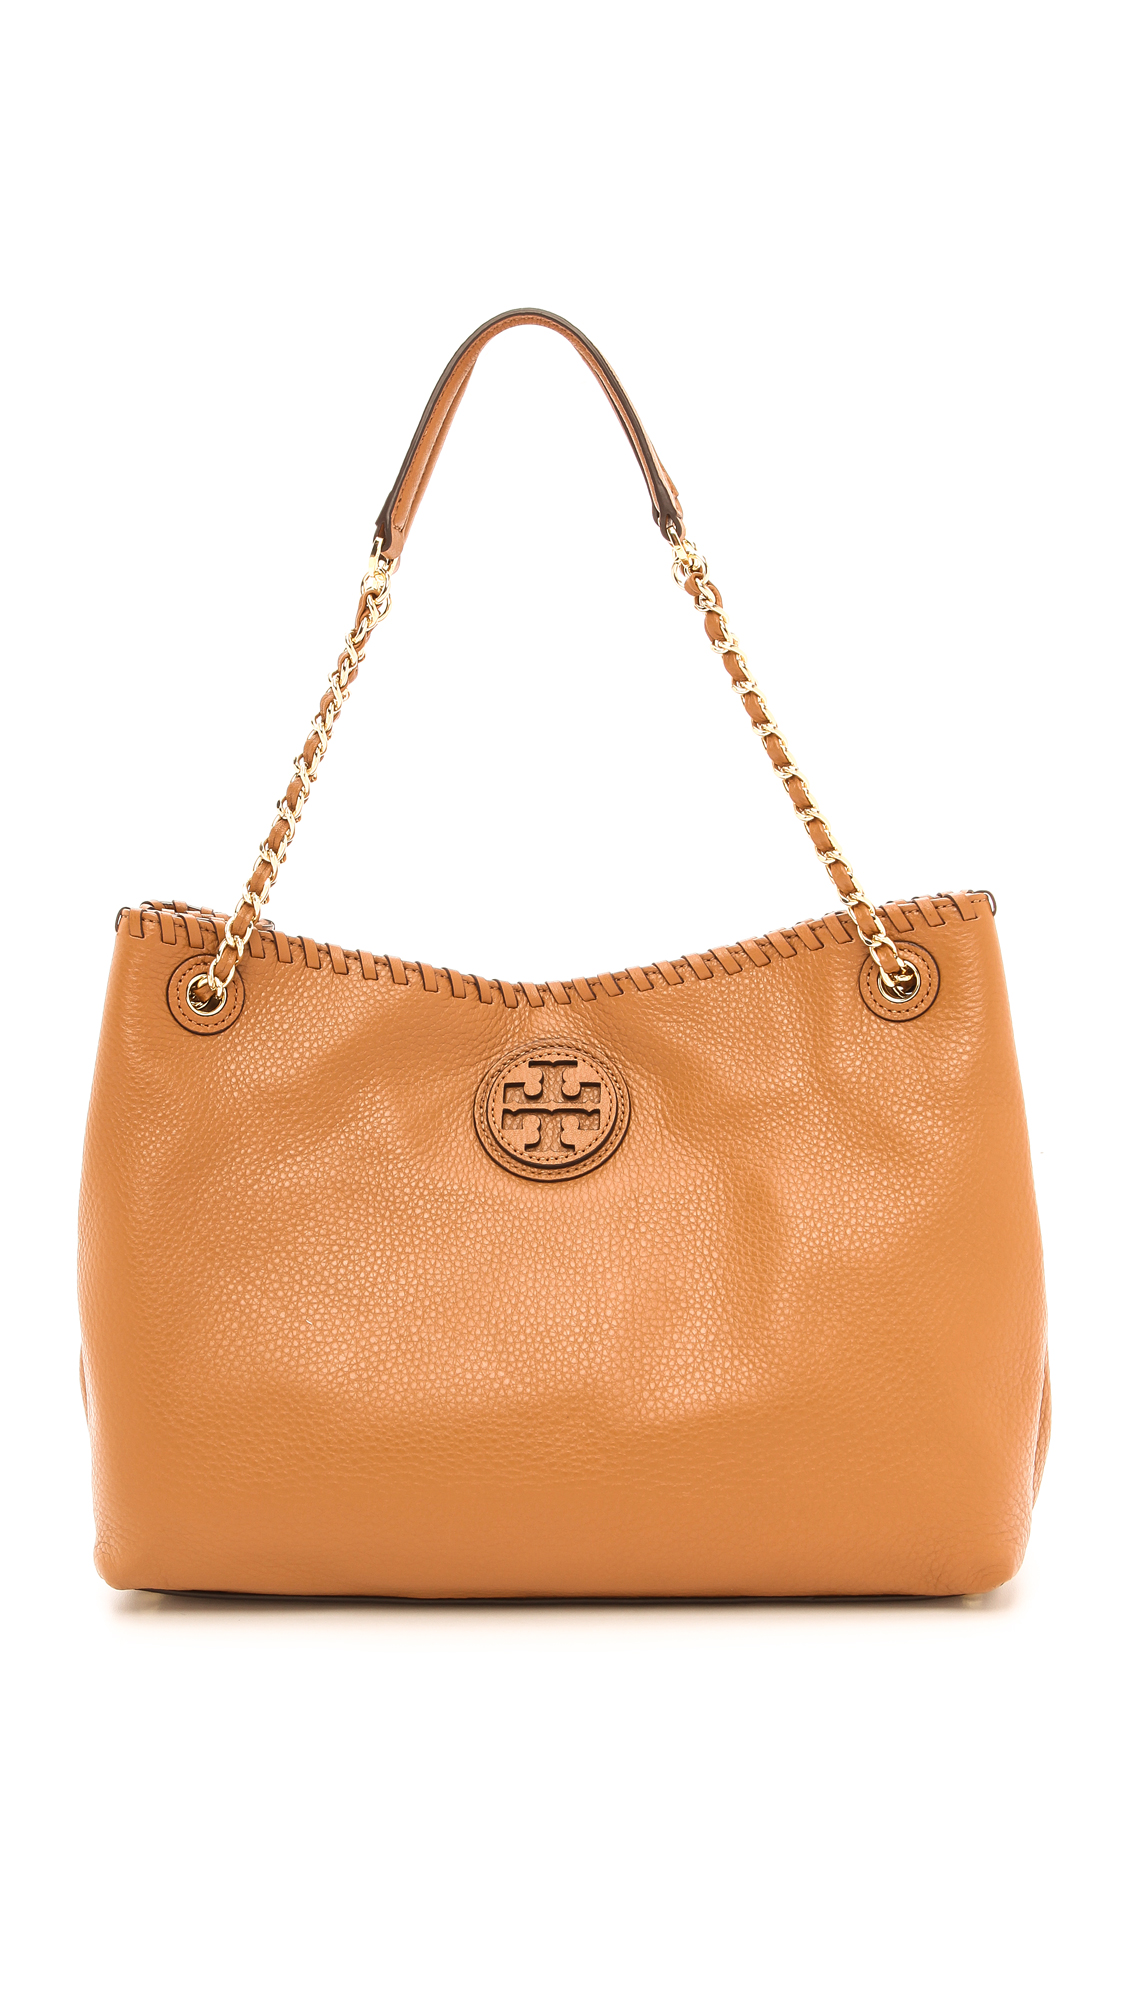 tory burch small marion tote tory burch jewelry sale. Black Bedroom Furniture Sets. Home Design Ideas